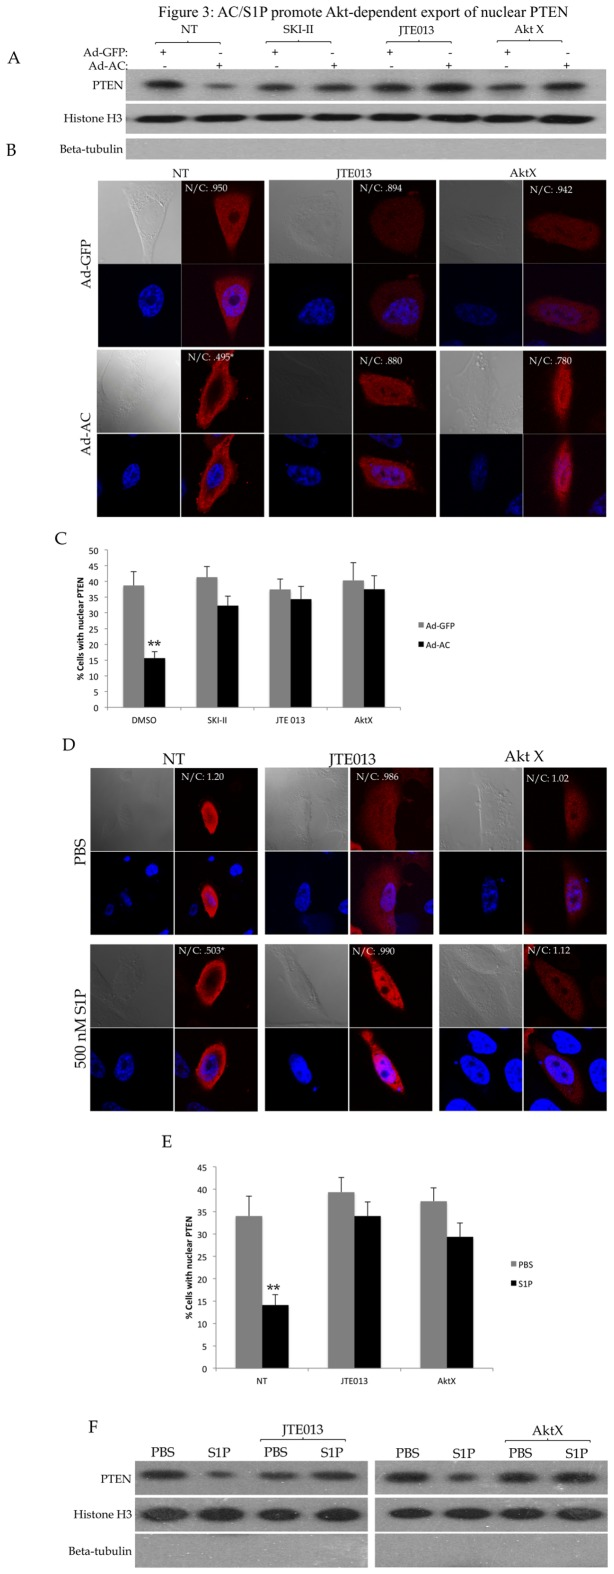 AC/S1P promote Akt-dependent export of nuclear PTEN. PPC1 cells were transfected with WT-PTEN were infected with Ad-GFP or Ad-AC for 48 hours in the presence of DMSO (NT) or the indicated compounds for 24 hours. A) Nuclear fractions from the indicated treatments were isolated and evaluated for presence of PTEN with Histone H3 as a nuclear loading control and absence of β-tubulin to indicate purity of the nuclear sample. B) Cells were immunostained for PTEN (red) and nuclei (blue). C) The percentage of cells from (B) which had nuclear PTEN in each treatment. D) PPC1 cells transfected with WT-PTEN were treated with 1µM JTE013 or 5µM AktX for 24 hours prior to treatment with the indicated dose of S1P or PBS for 2 hours followed by fixation and immunostaining for PTEN (red) and nuclei (blue). E) The percentage of cells from (D) which had nuclear PTEN. F) Nuclear fractions from the indicated treatments were isolated and evaluated for presence of PTEN with Histone H3 as a nuclear loading control and absence of β-tubulin to indicate purity of the nuclear sample. One way ANOVA with Bonferroni correction, *p